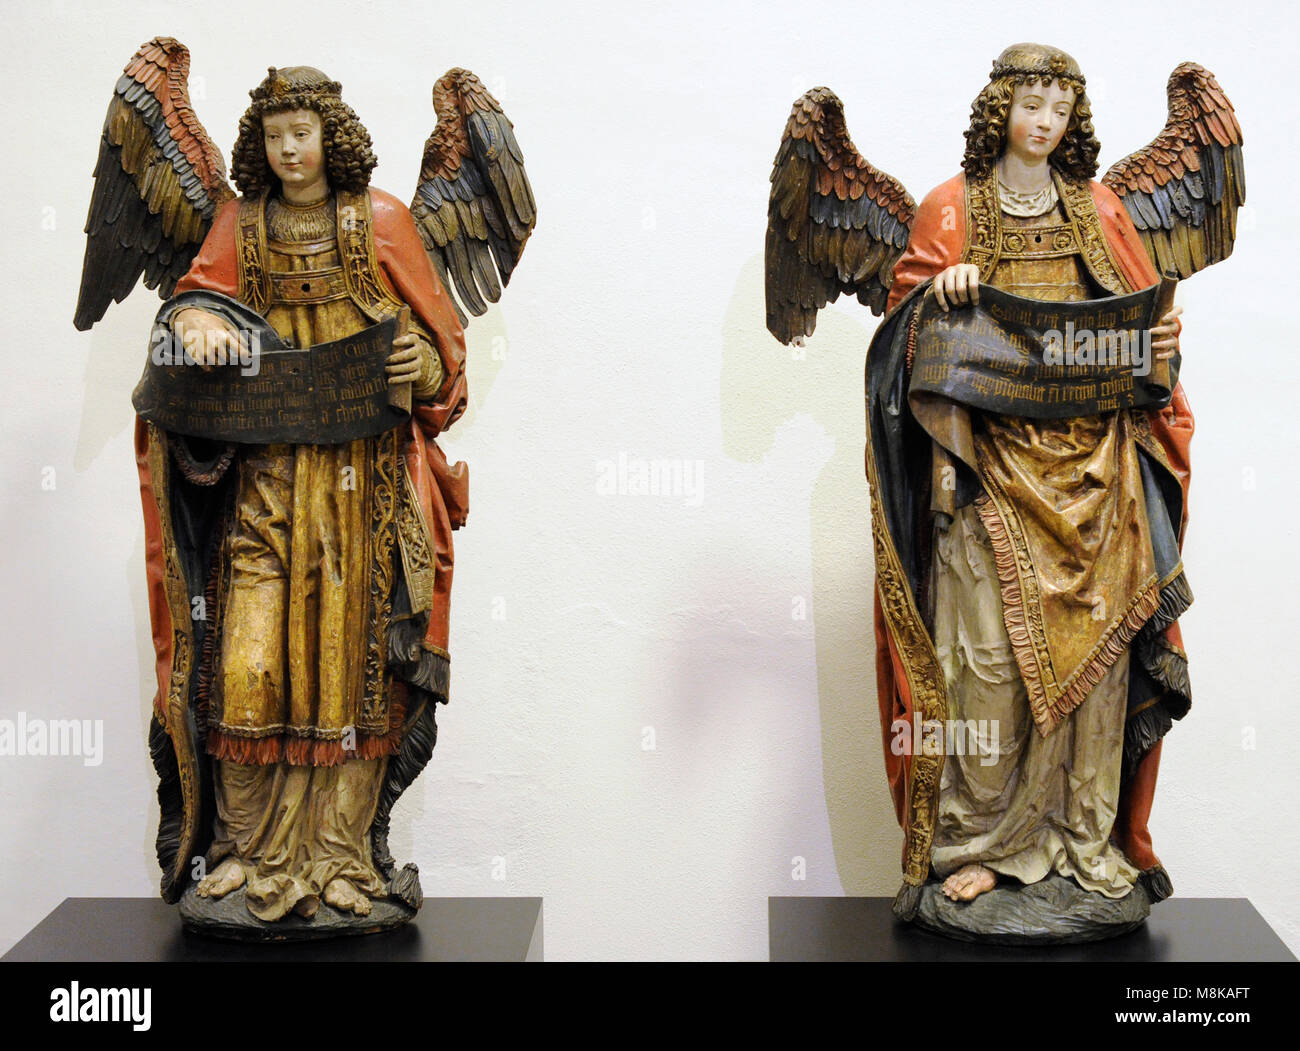 Two angels with banners. Cologne, Germany, c. 1530. Lime, polychrome. Museum Schnütgen. Cologne, Germany. - Stock Image